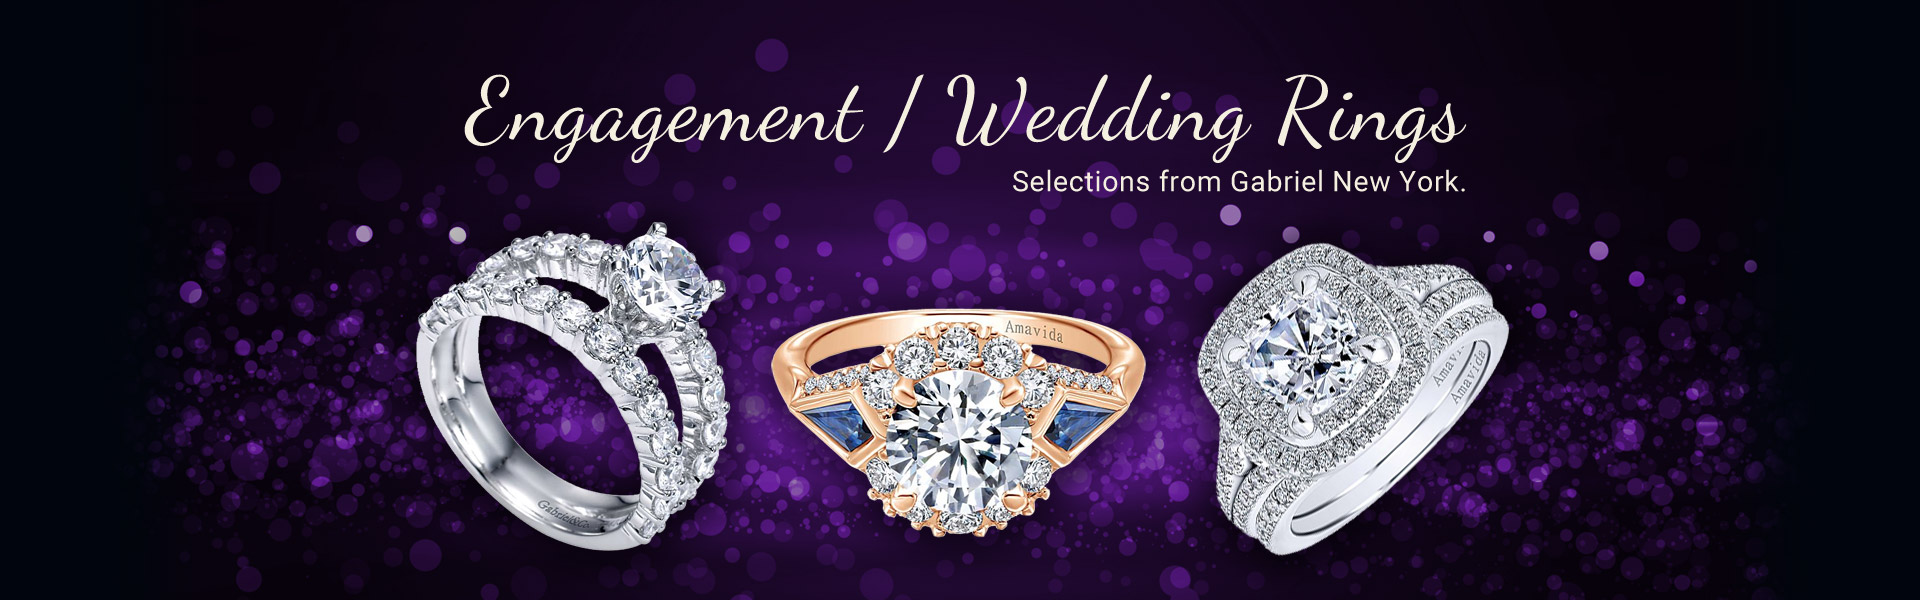 Gabriel New York - Engagment and Wedding Rings